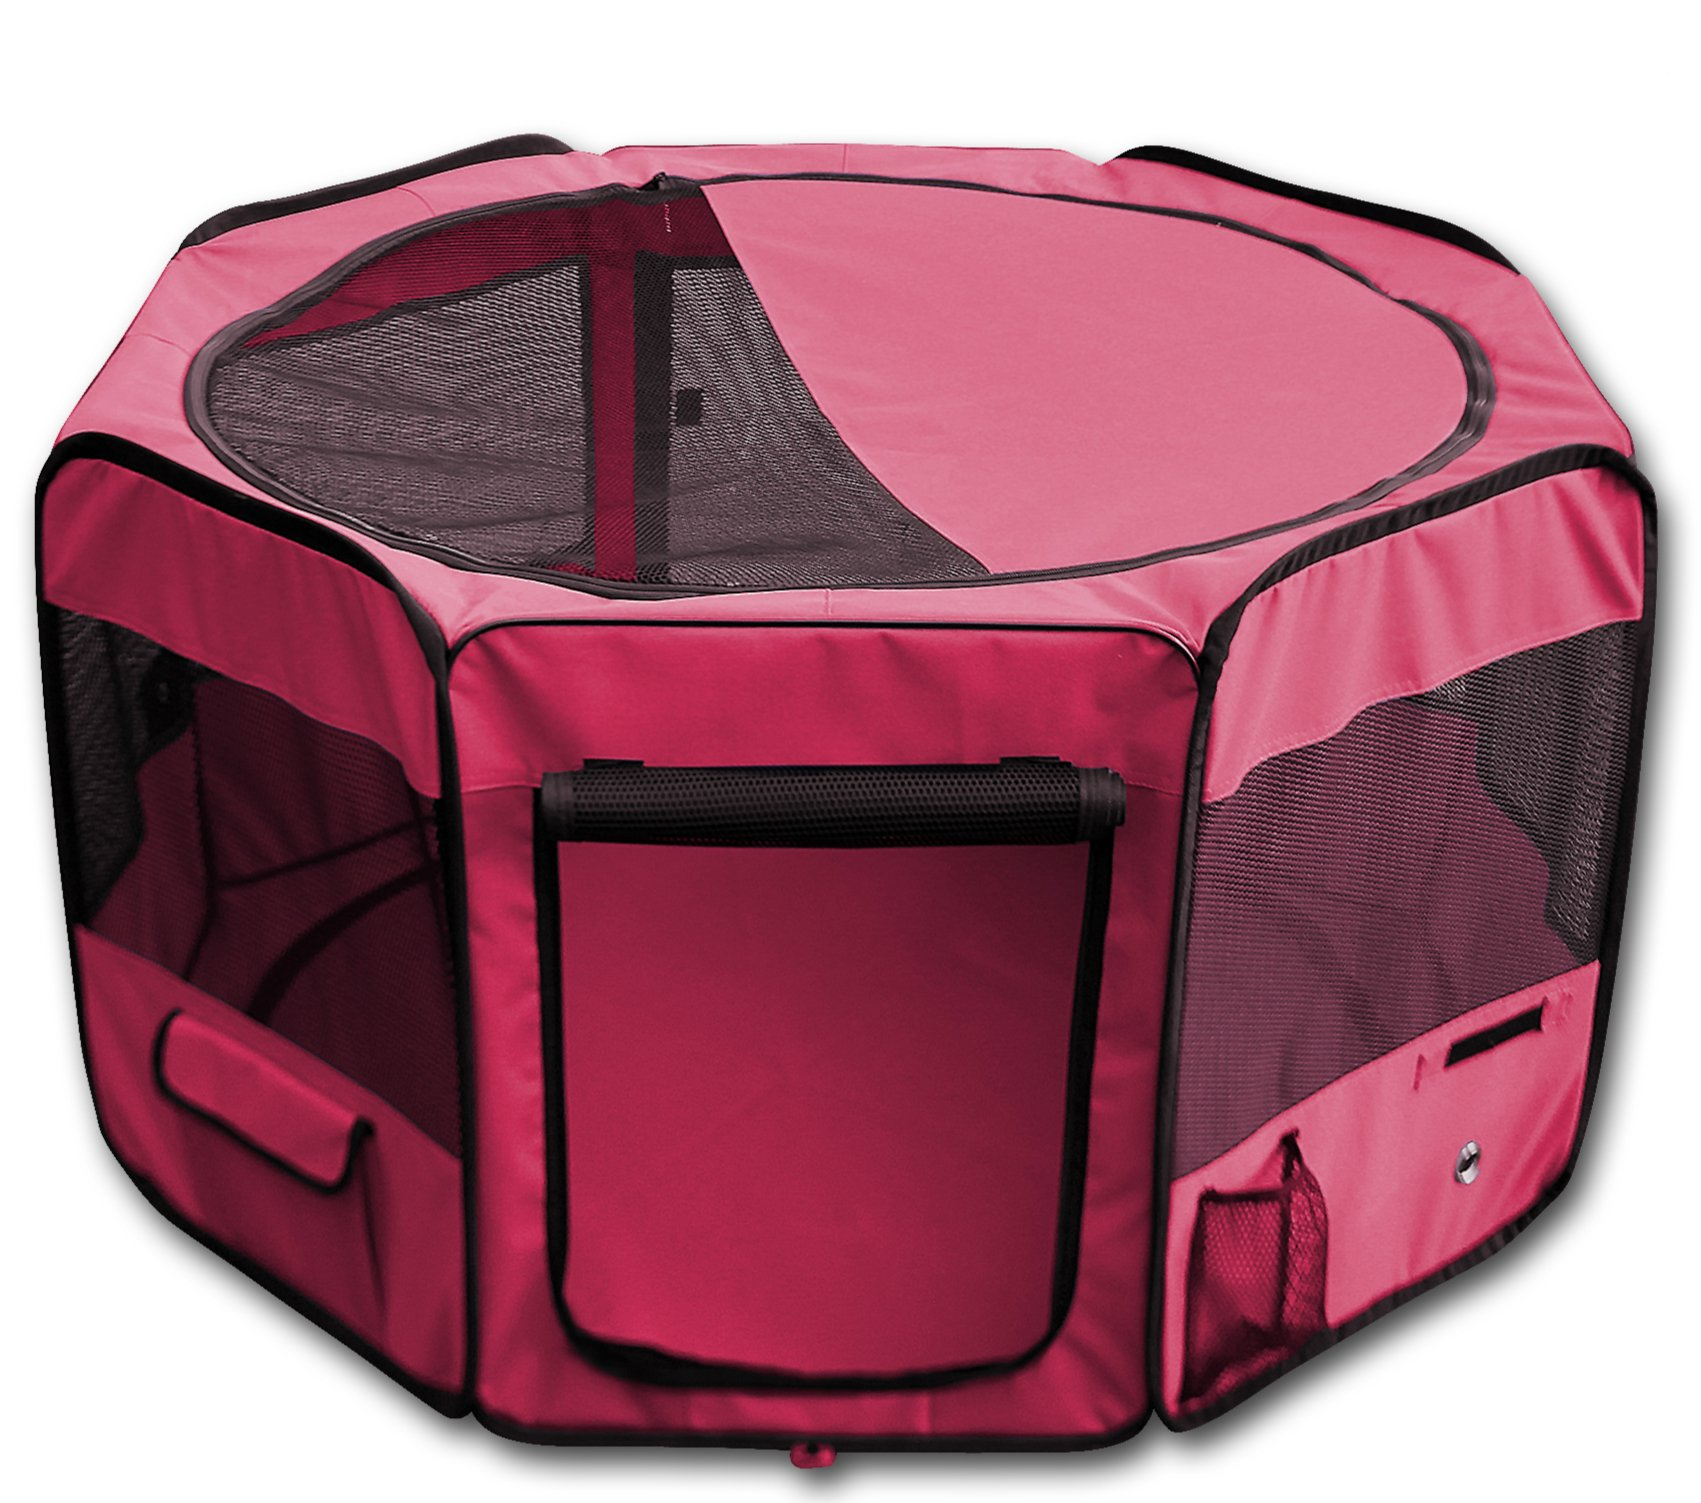 YoYo Moon 45'' Pet Puppy Dog Playpen Exercise Puppy Pen Kennel 600d Oxford Cloth Red